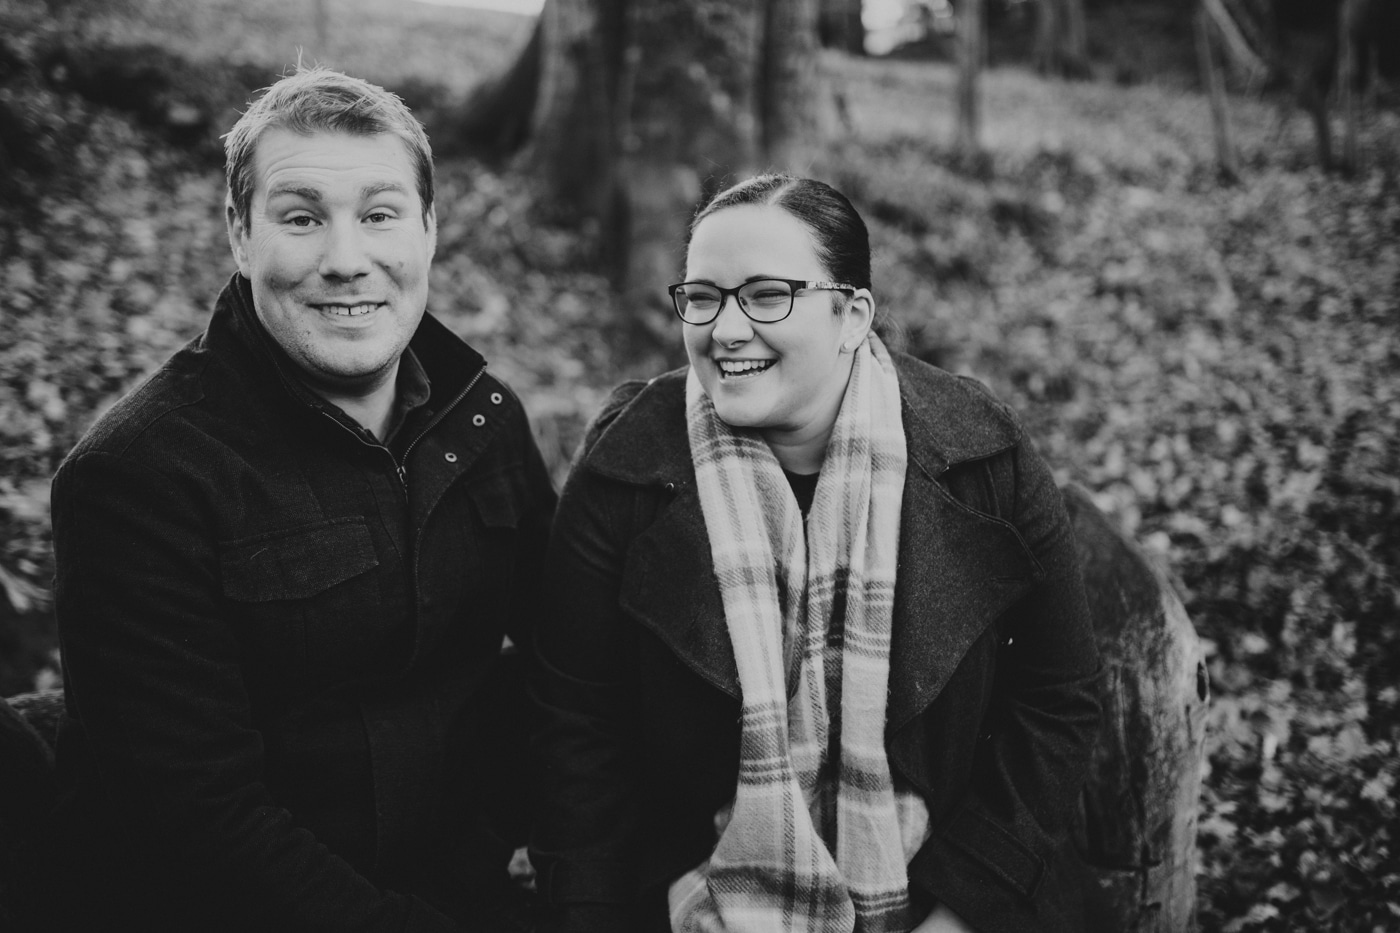 Man and woman engagement couple portrait shoot by Joshua Wyborn Photographic